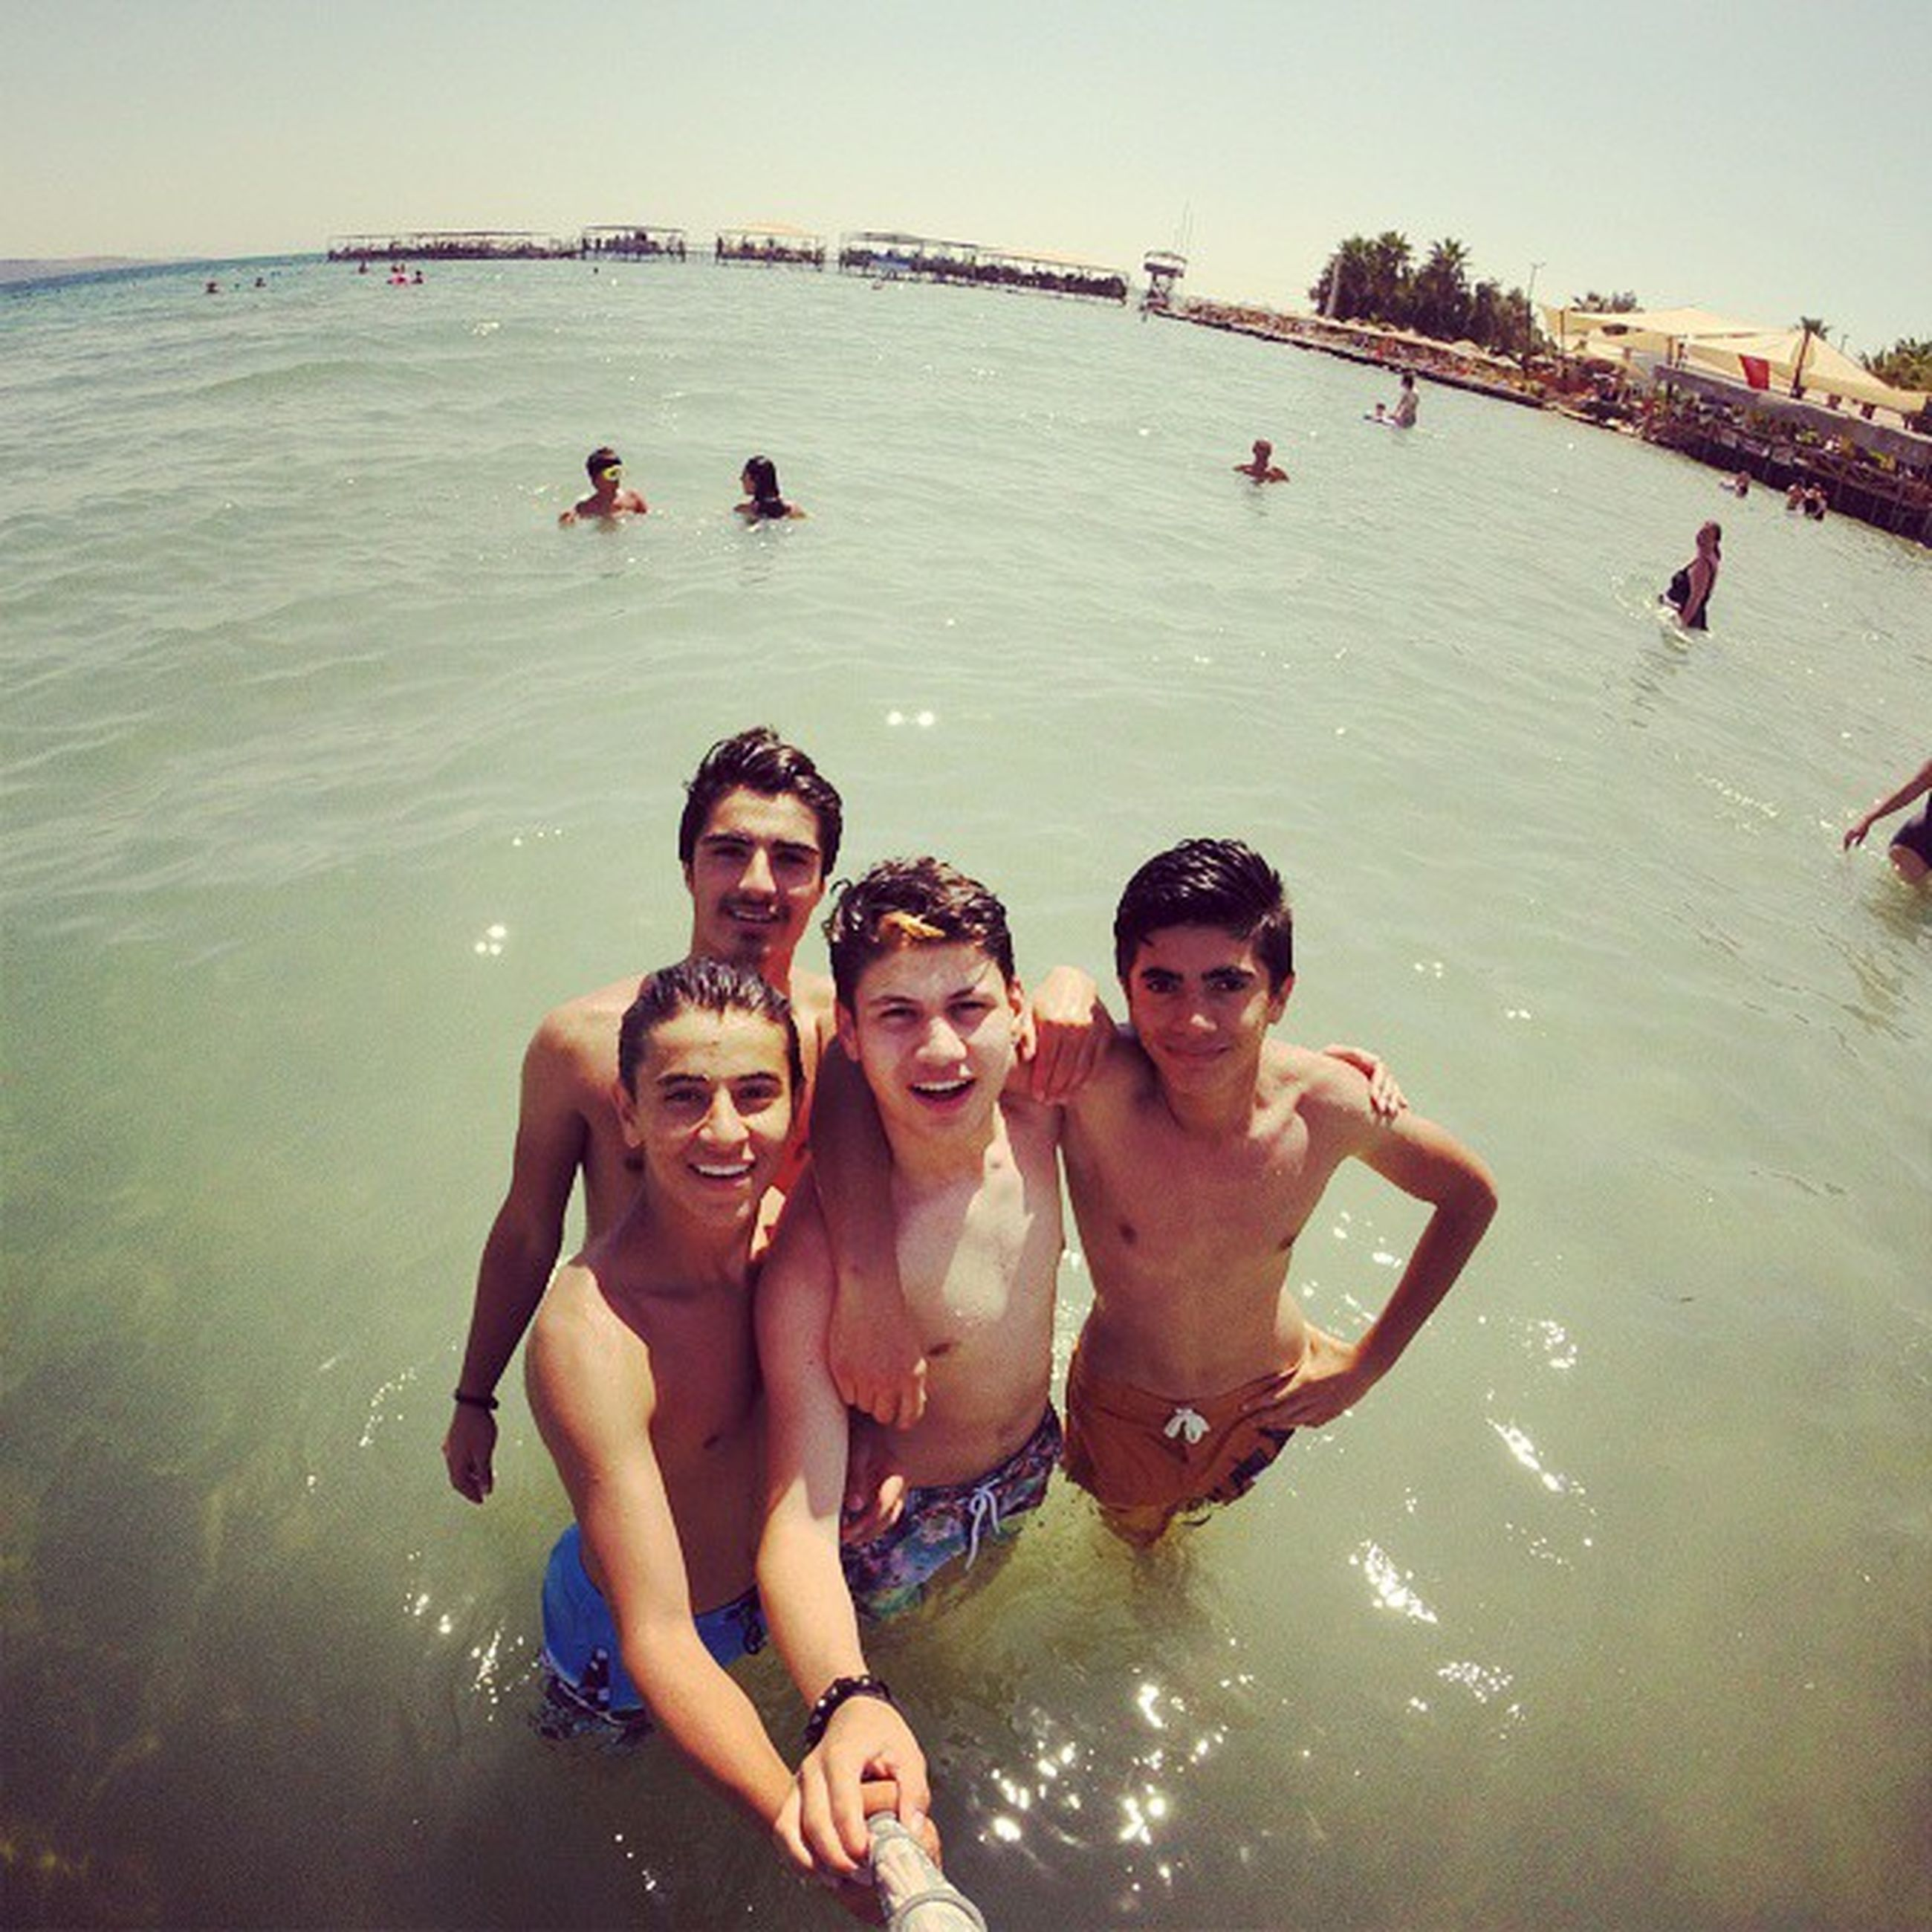 water, lifestyles, leisure activity, togetherness, vacations, sea, enjoyment, bonding, person, happiness, beach, love, shirtless, fun, friendship, high angle view, boys, family